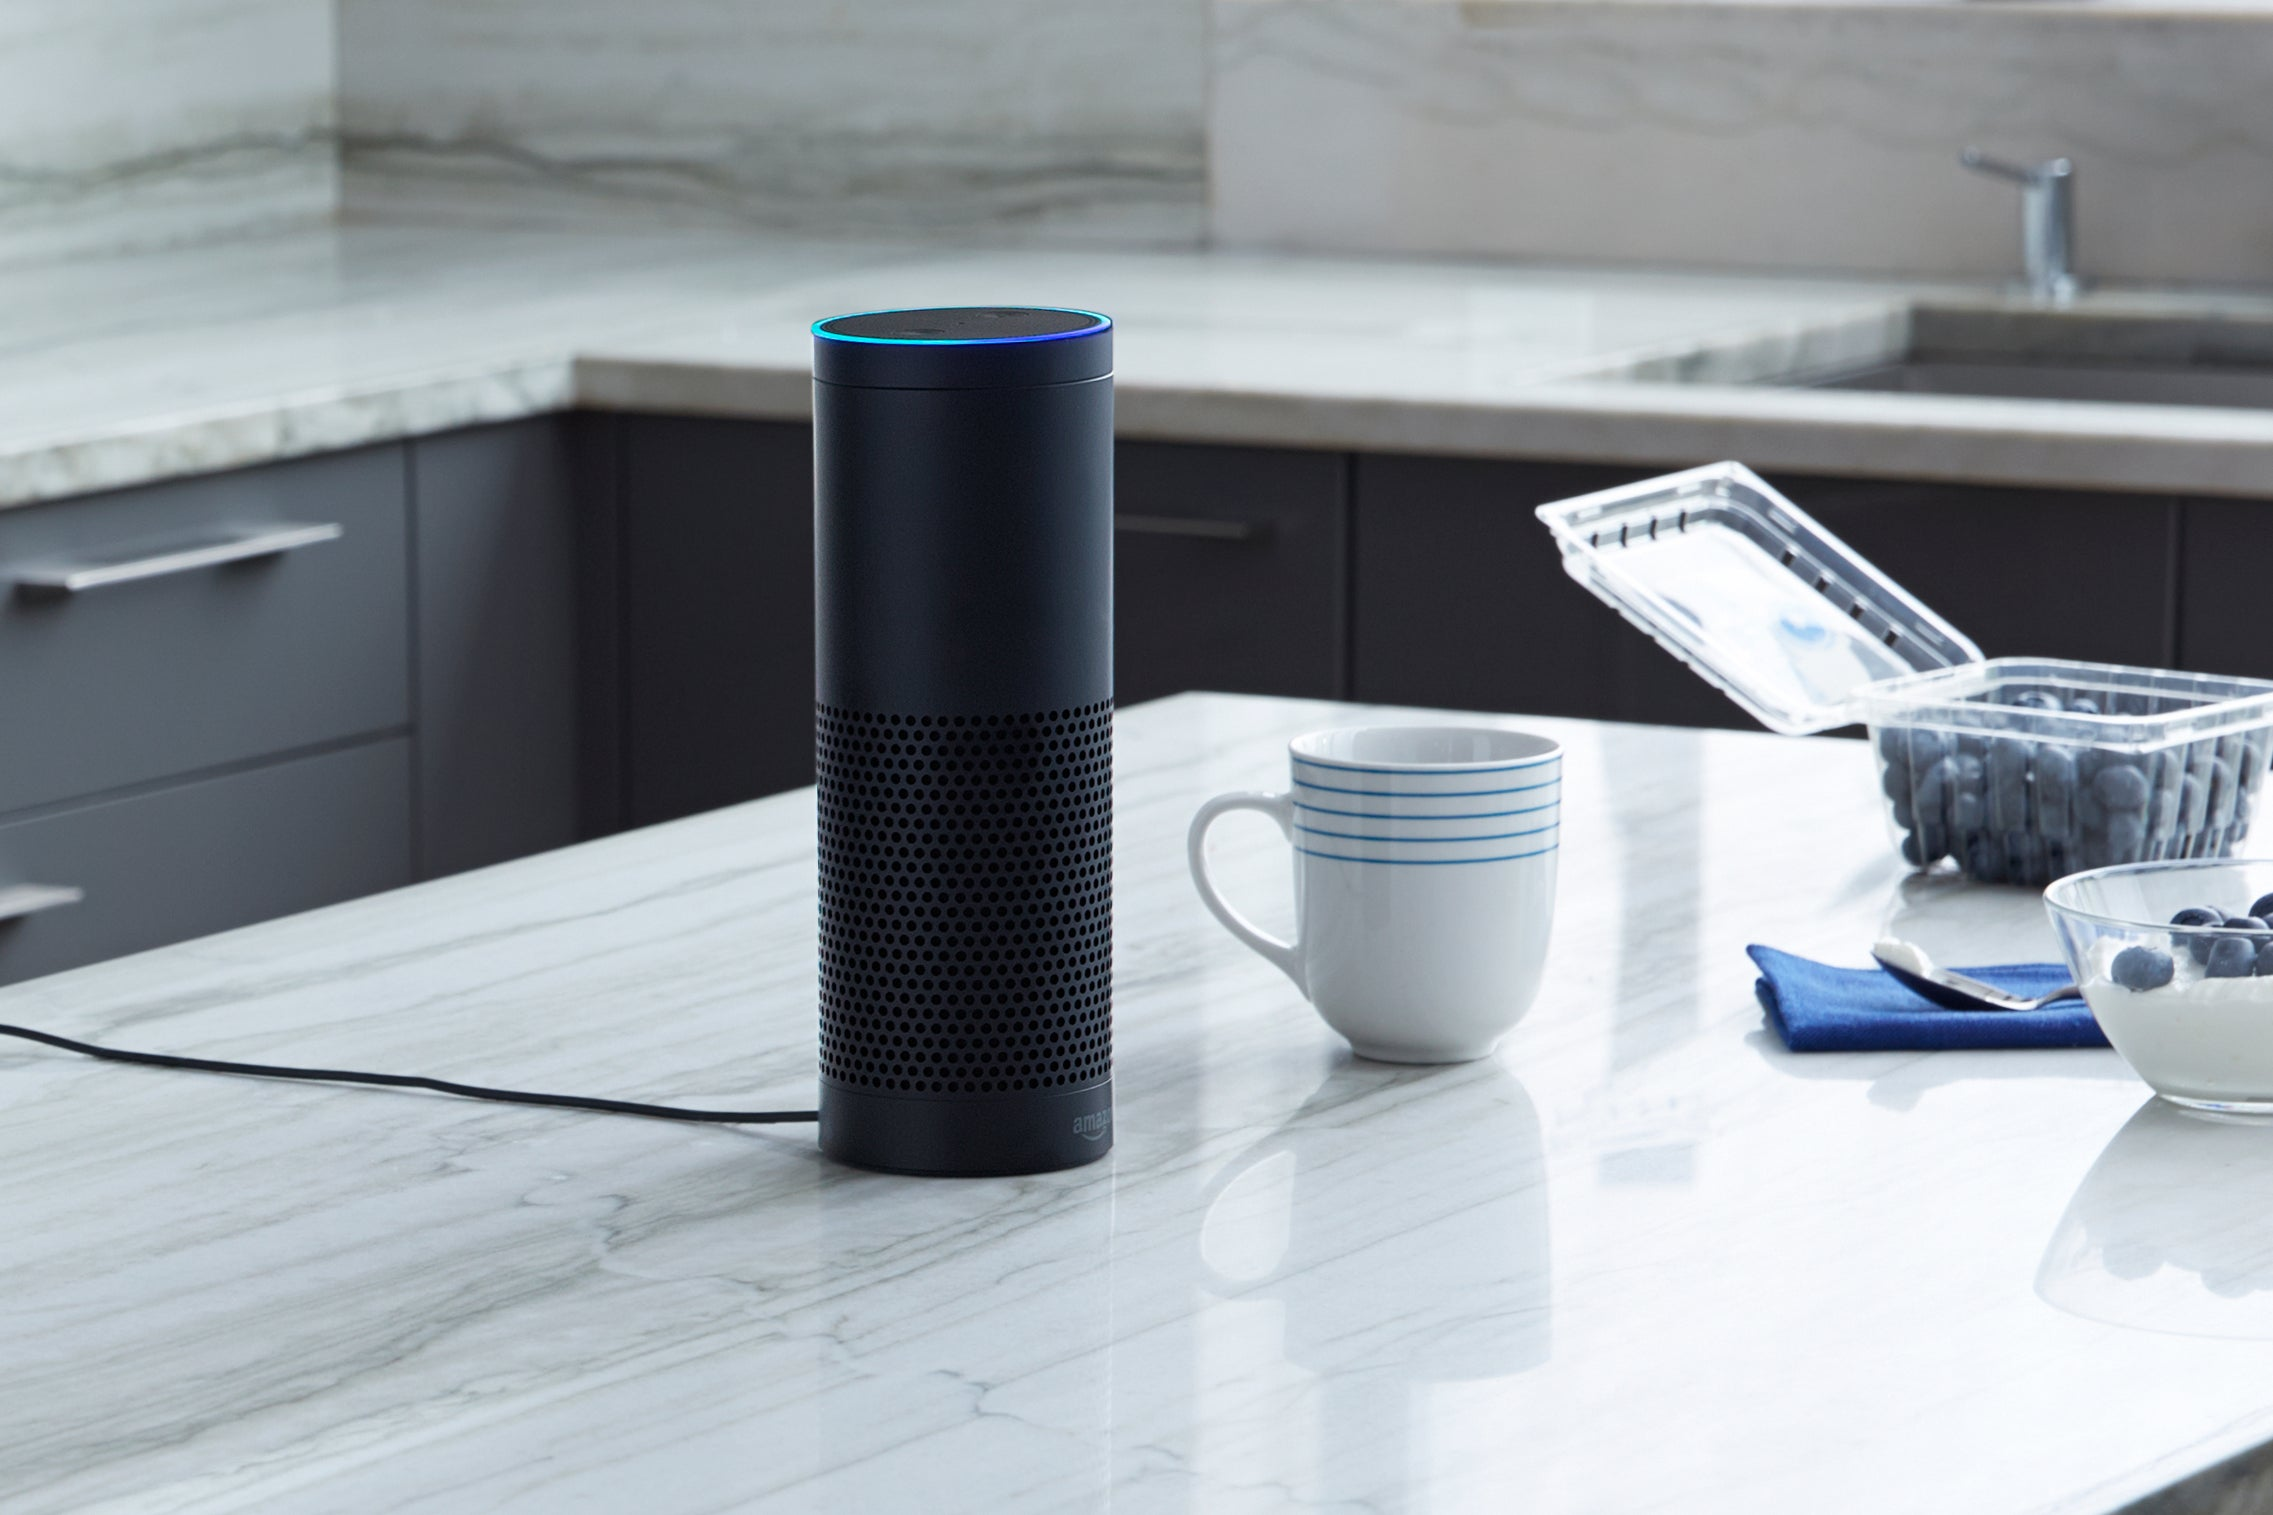 Amazon's Echoes Can Finally Sync Together To Play Music Like A Sonos